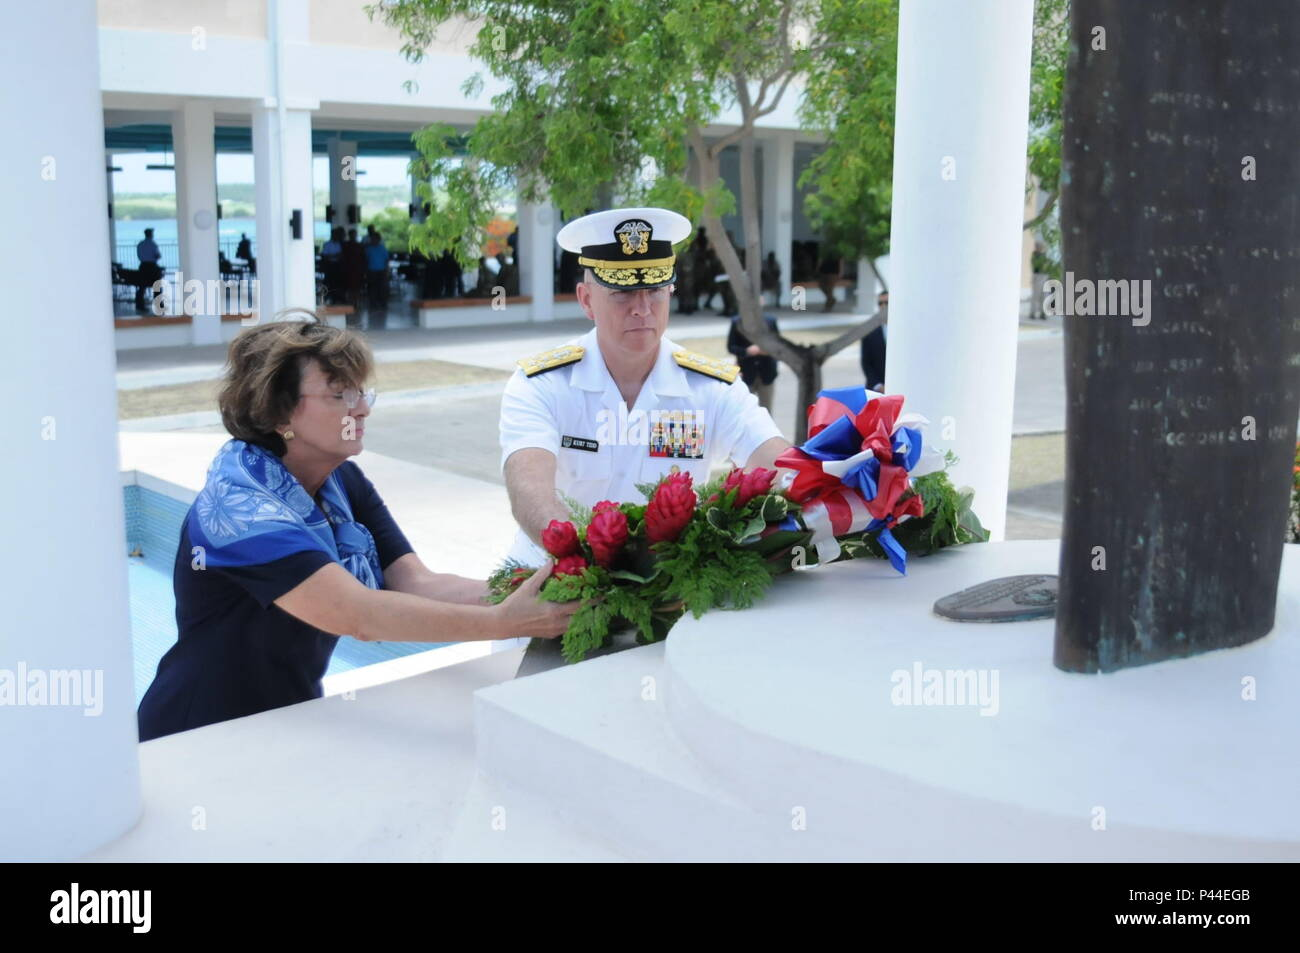 Linda S. Taglialatela, Chief of the U.S. Mission to Barbados, the Eastern Caribbean and the OECS, and Adm. Kurt W. Tidd, commander of U.S. Southern Command, lay a wreath at the base of a monument on the campus of St. George's University in Grenada, June 14, 2016. The monument memorializes the U.S. servicemen killed during Operation Urgent Fury in 1983. The laying of the wreath took place after the closing ceremony for Tradewinds 2016.  U.S. Army photo by Sgt. Jason Drager. - Stock Image